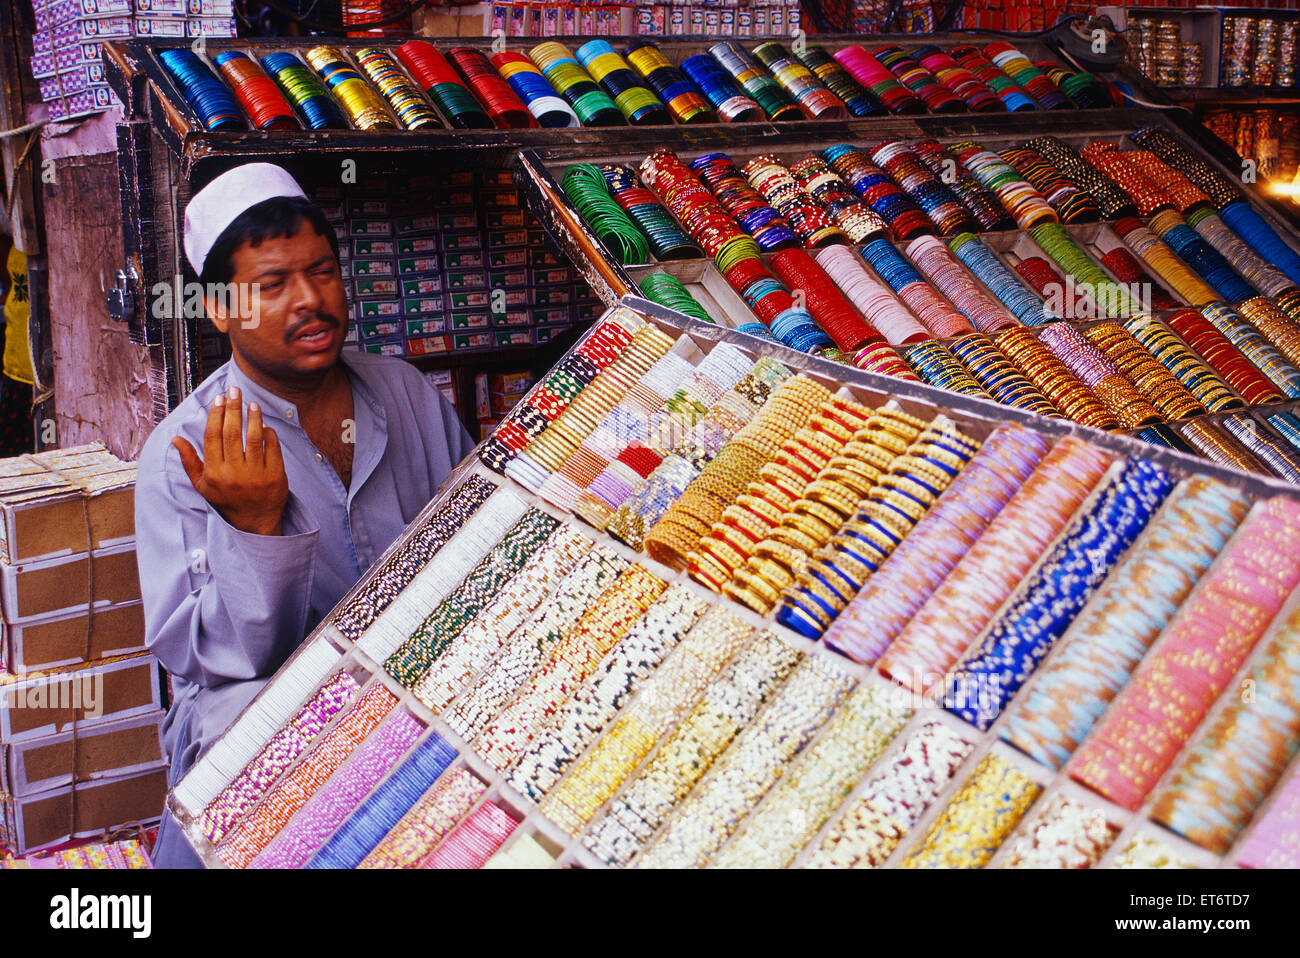 Muslim man selling bangles in an Indian street ( India) - Stock Image